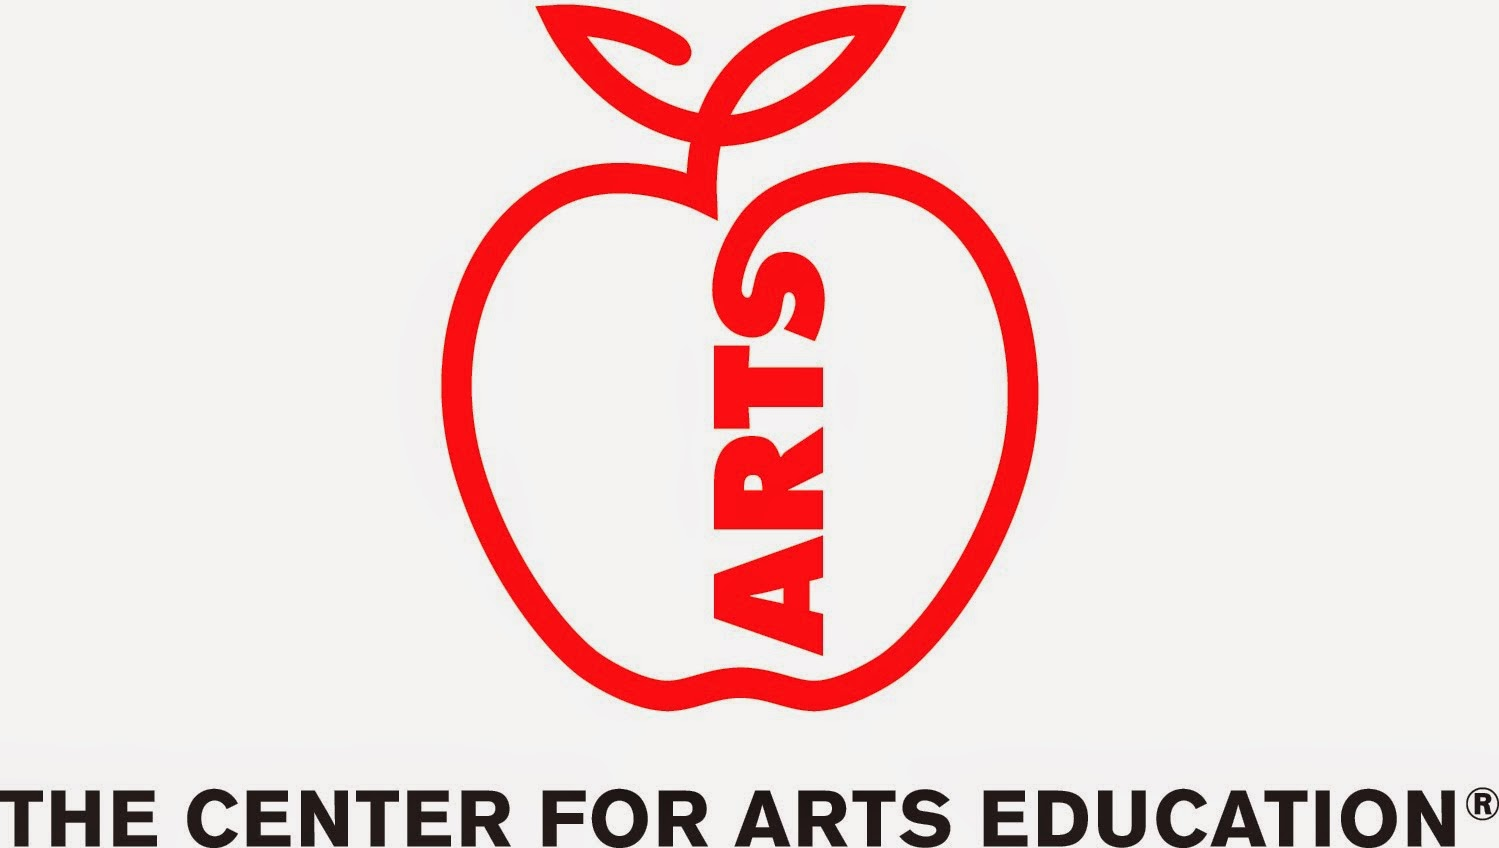 The Center for Arts Education